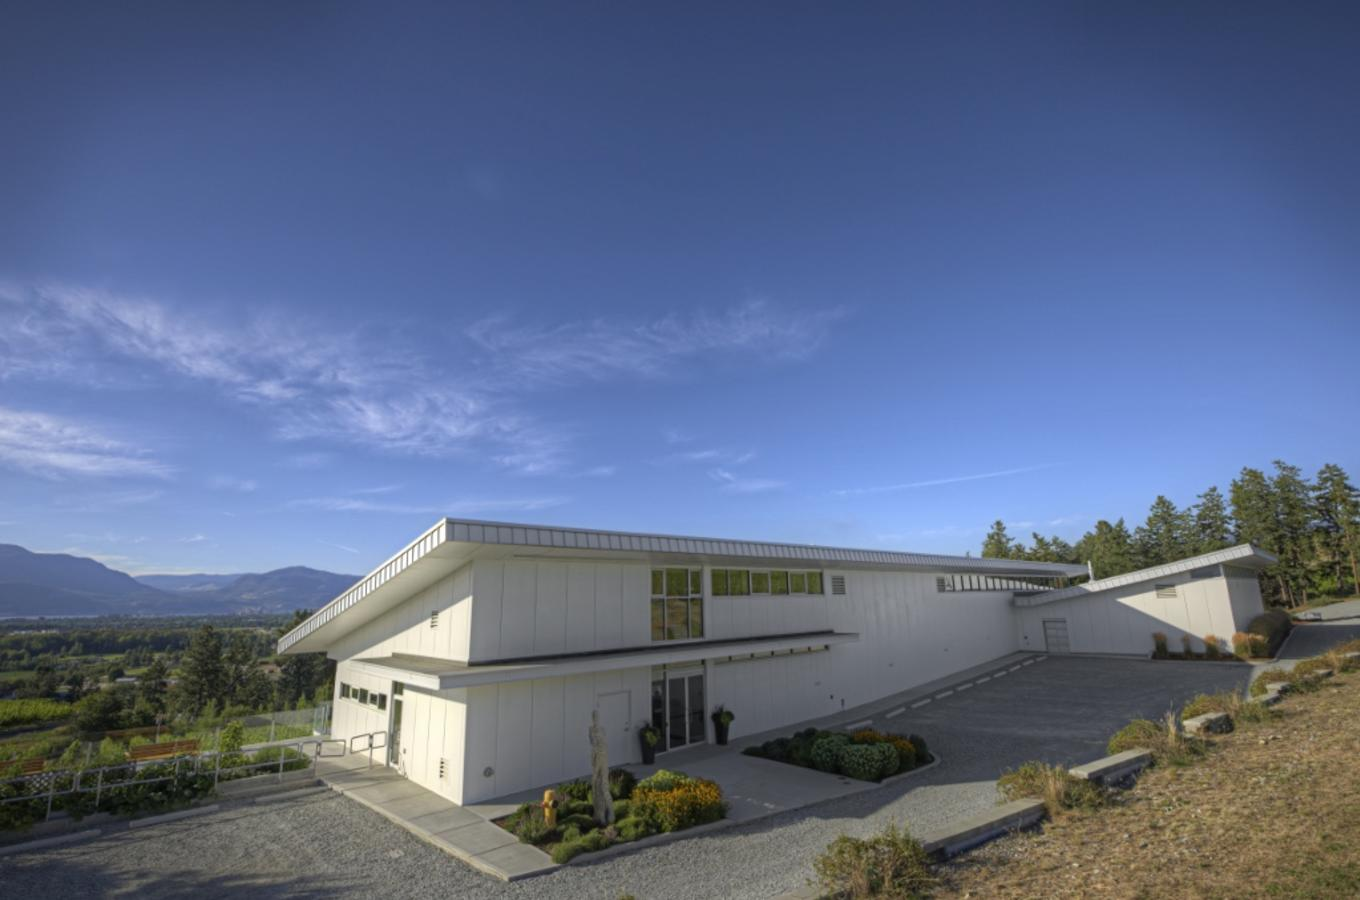 Exterior of Tantalus LEED Facility